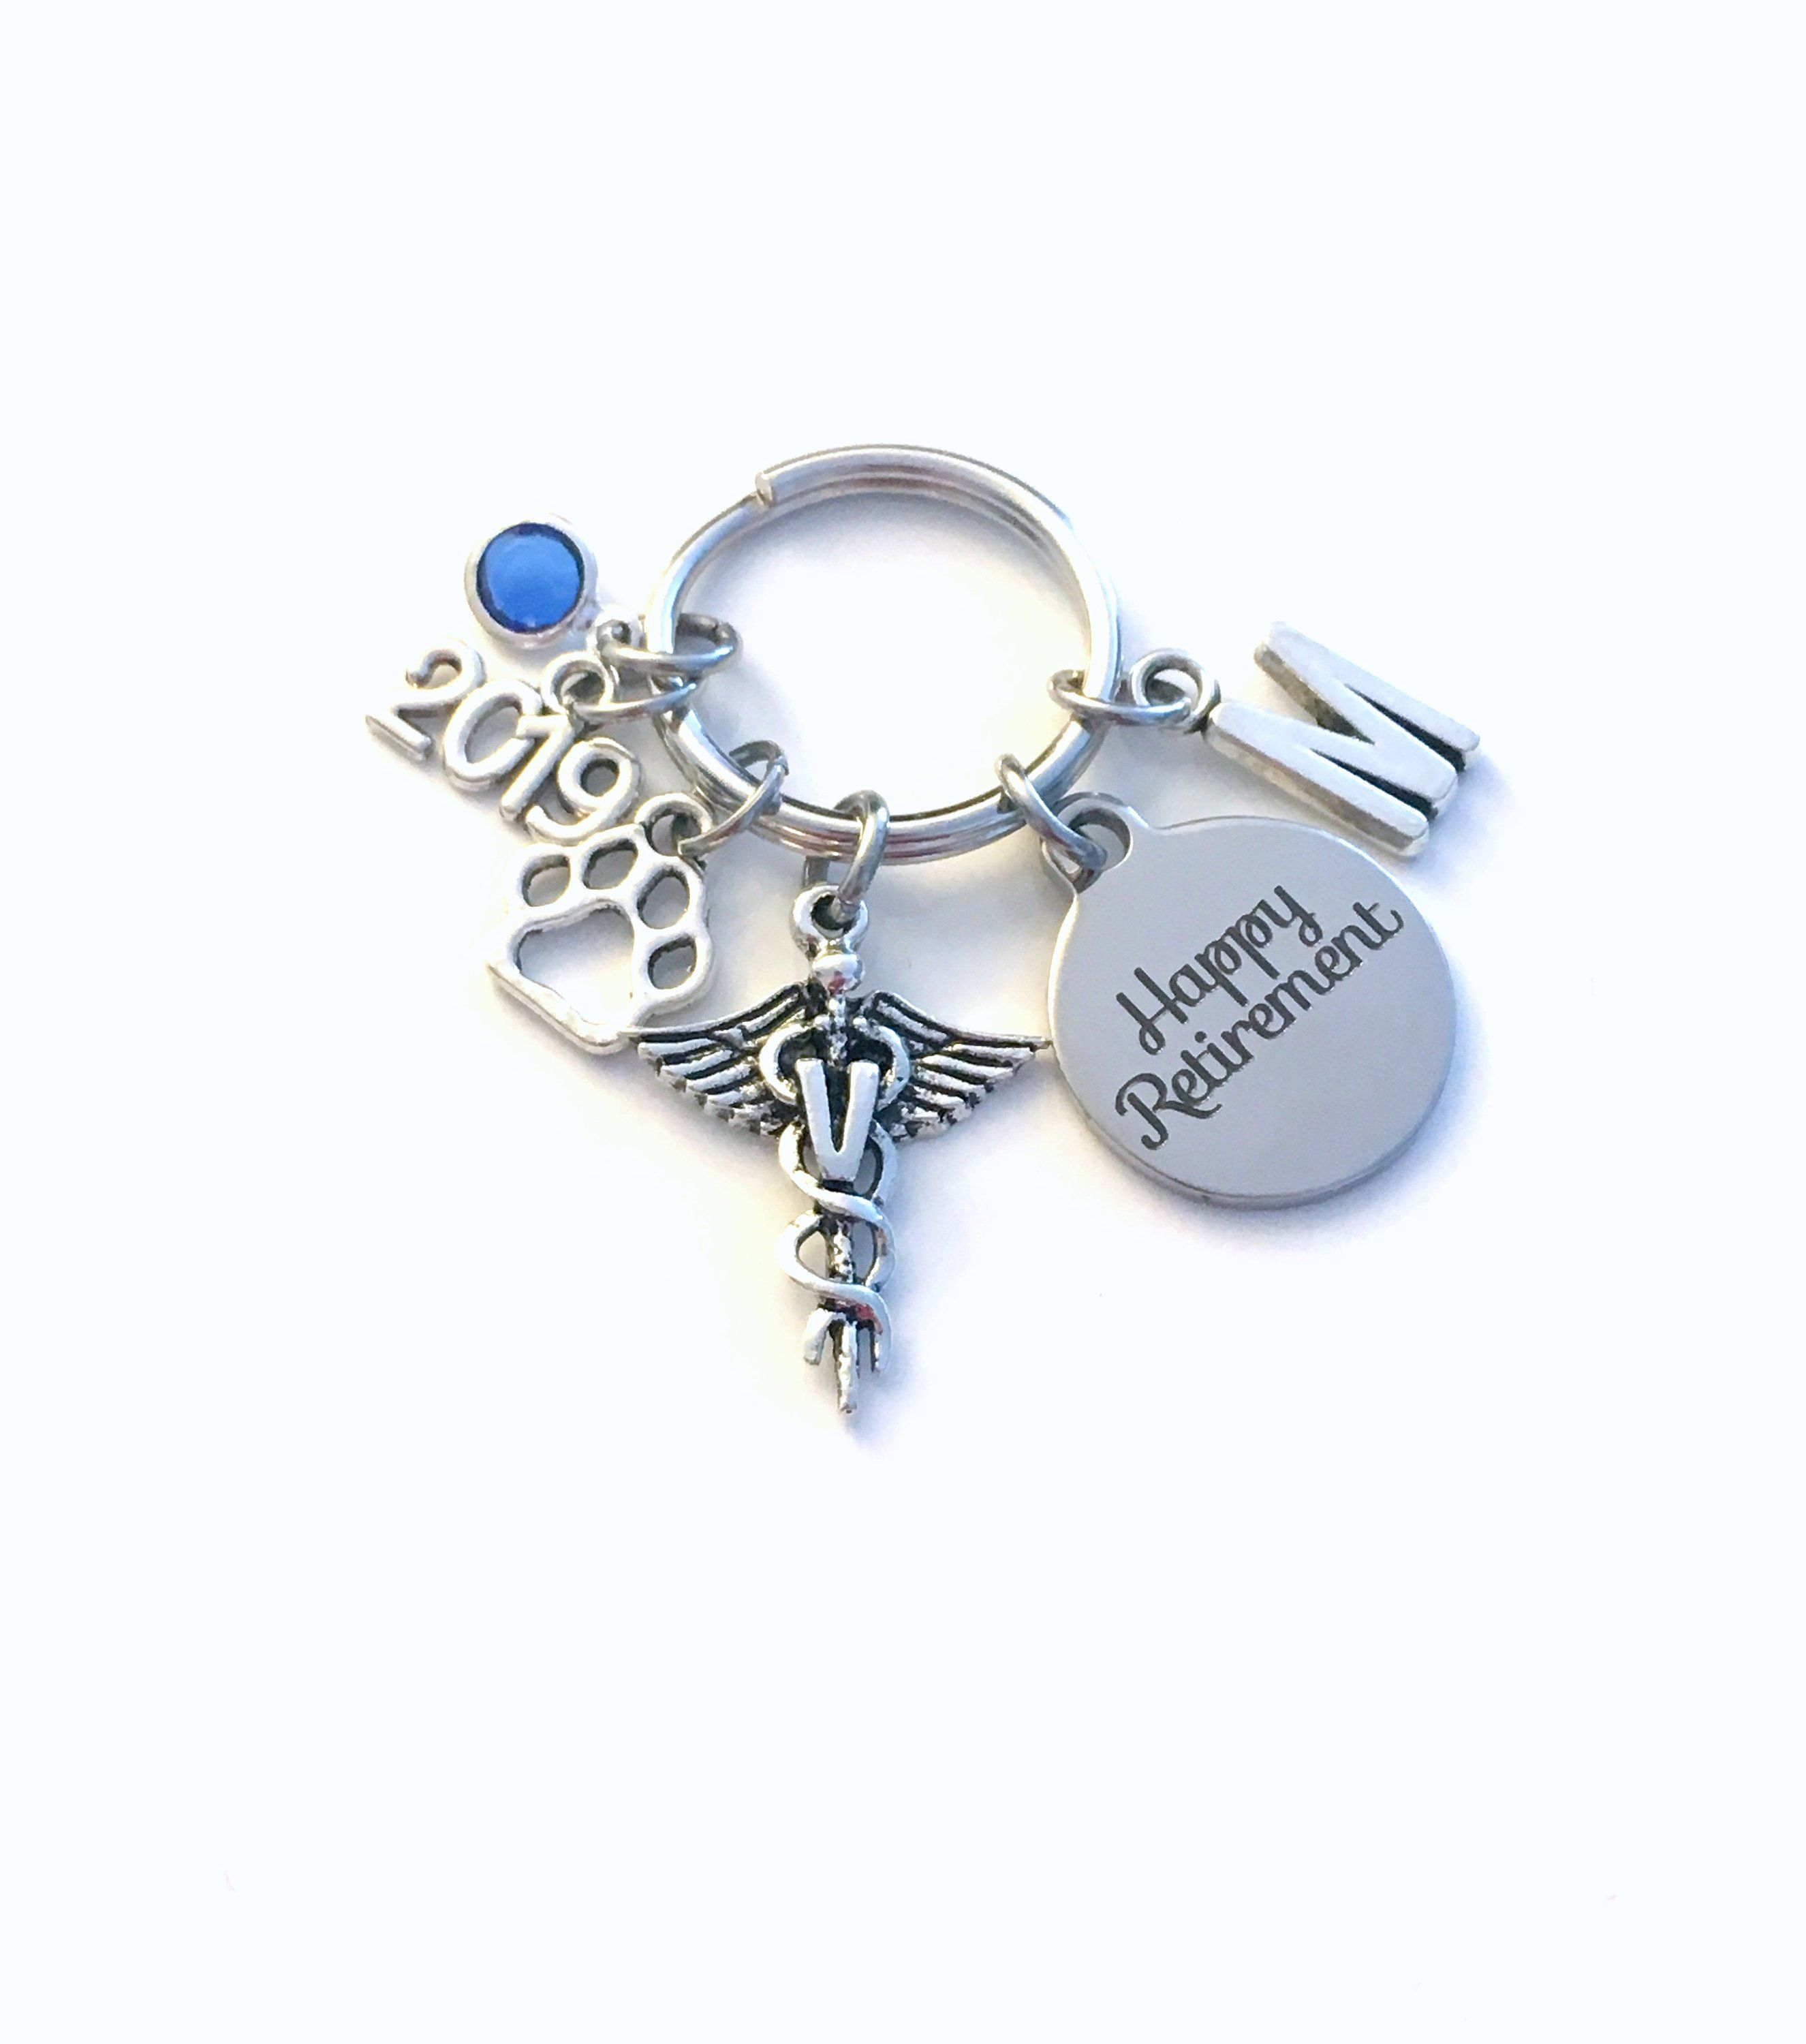 Retirement Gift for Vet Keychain 2019 Caduceus Medical Animal Doctor  Veterinarian Key chain Keyring Initial letter V women men him her pet by ... d93eaf5f0a